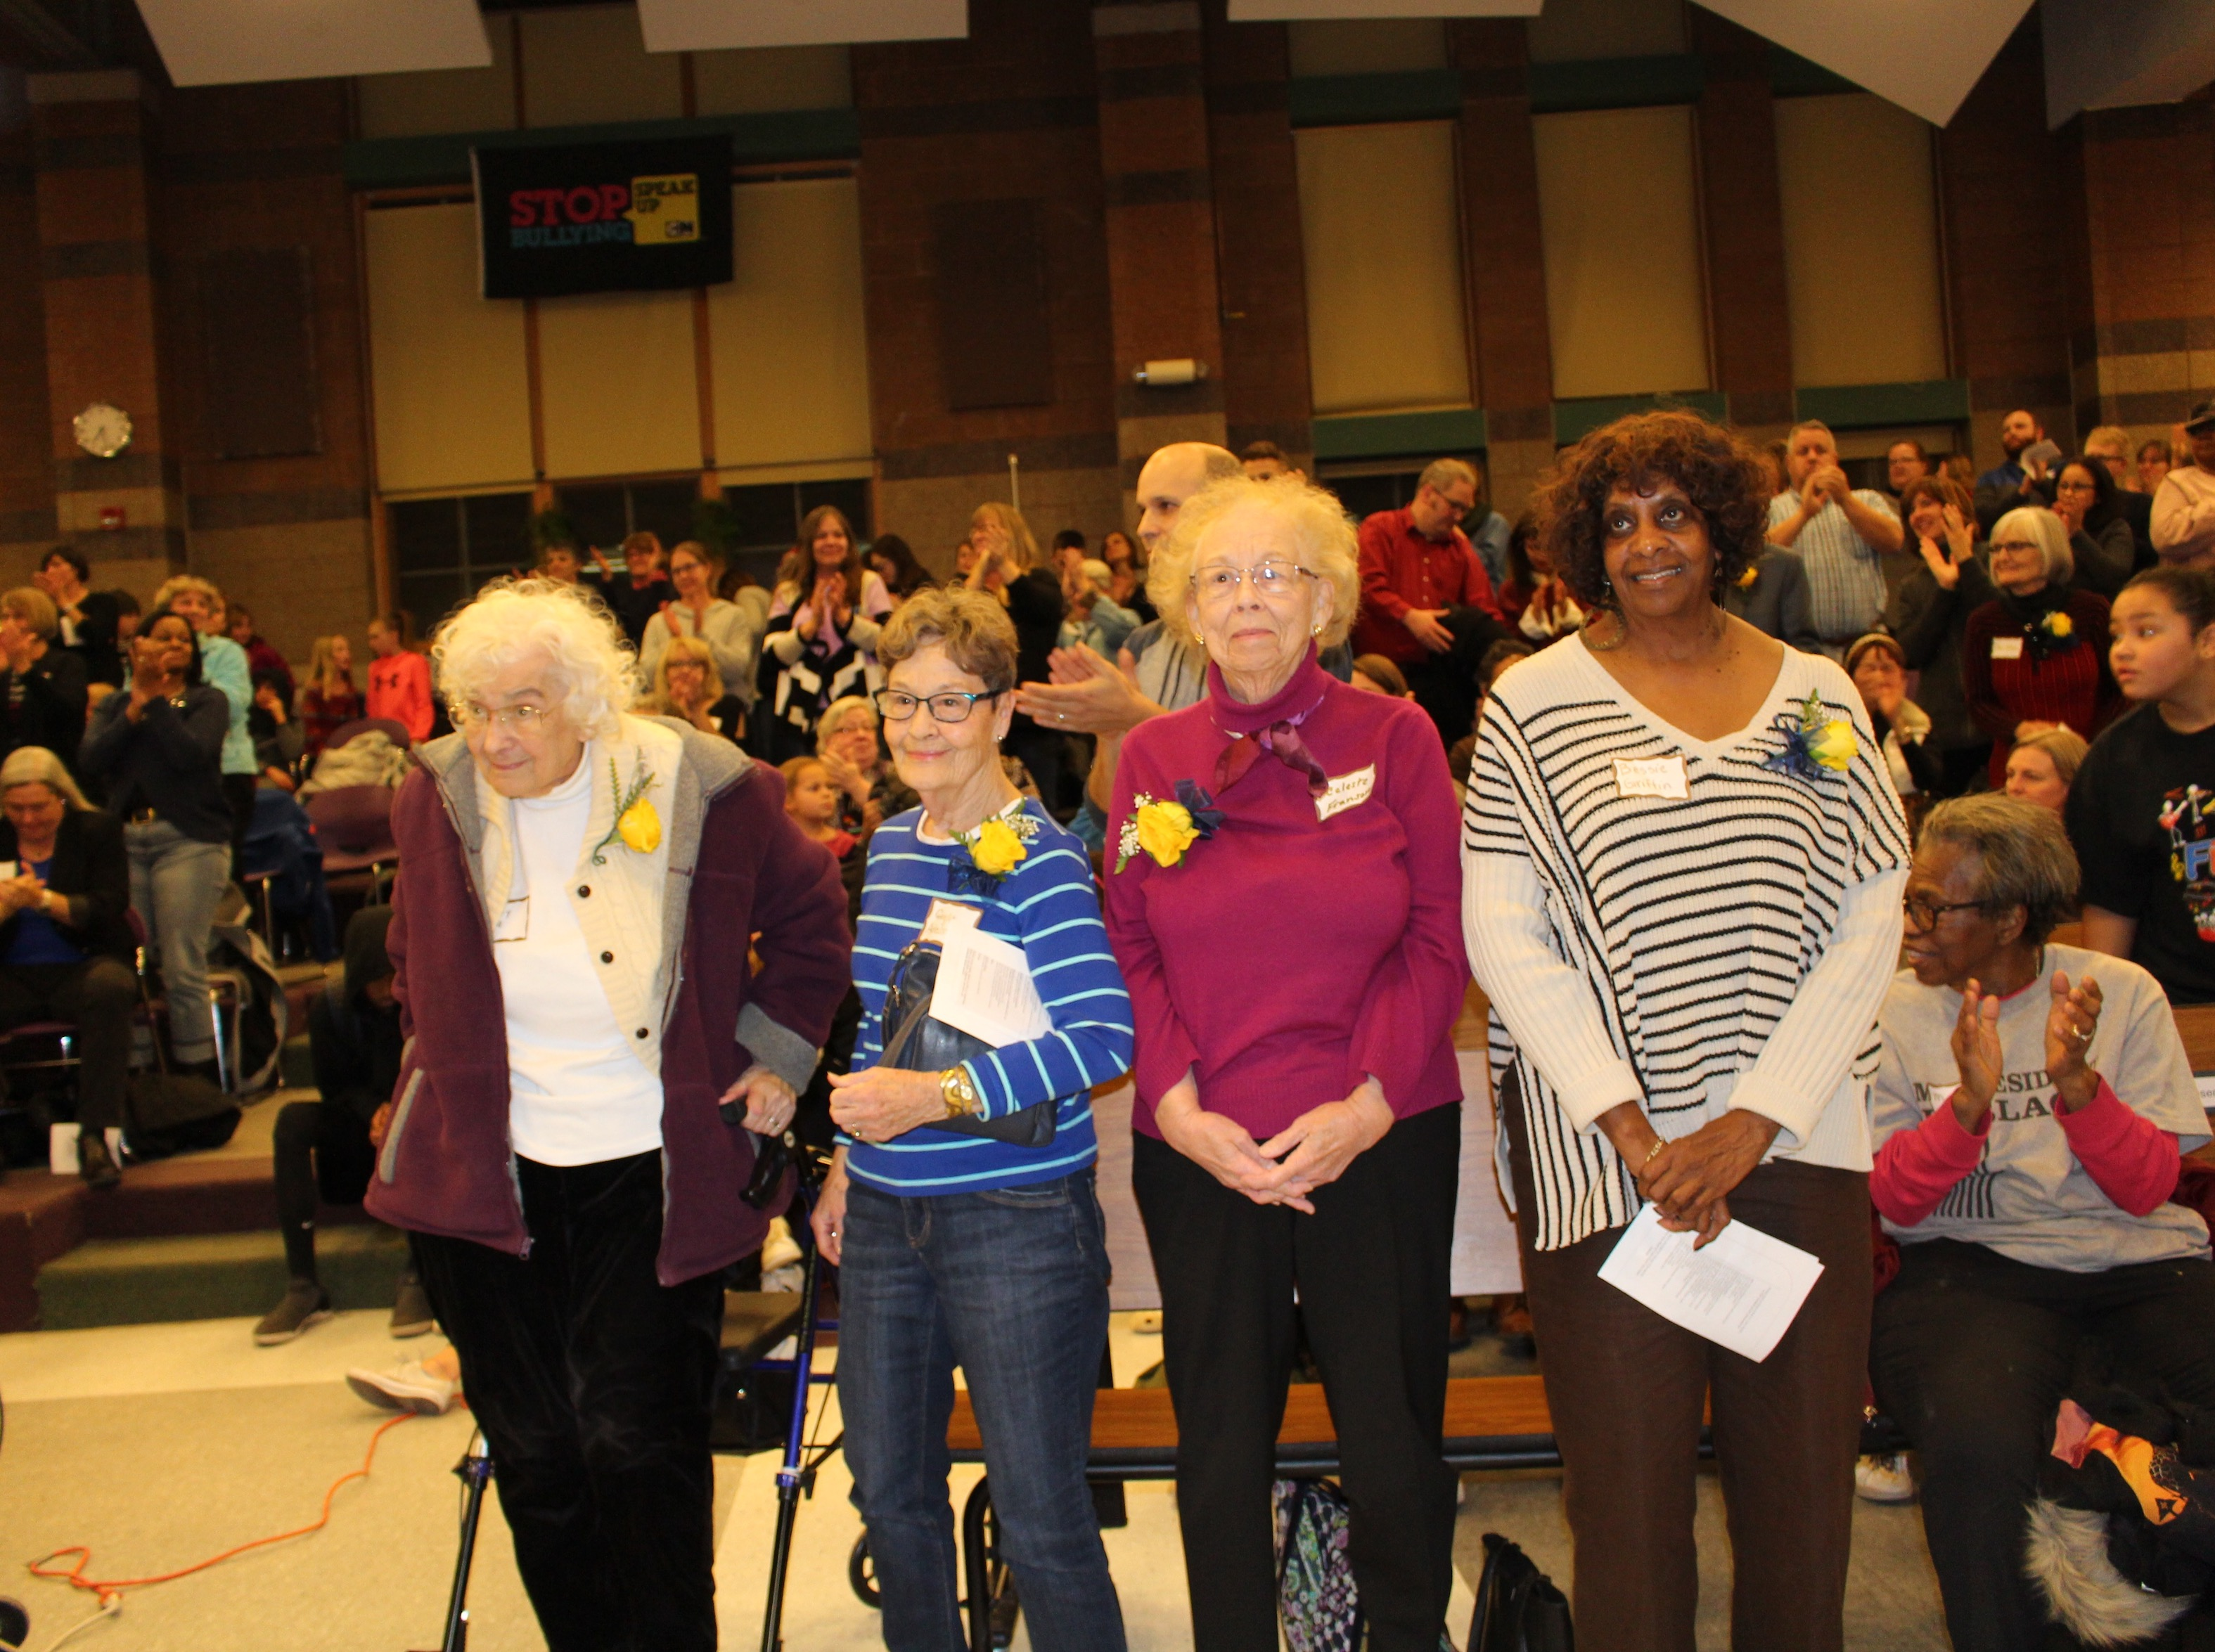 Hale and Field elders (from left to right) Gerry Sell, Gayle Adelsman, Celeste Franson and Bessie Griffin were among those honored Nov. 9. Photos by Nate Gotlieb